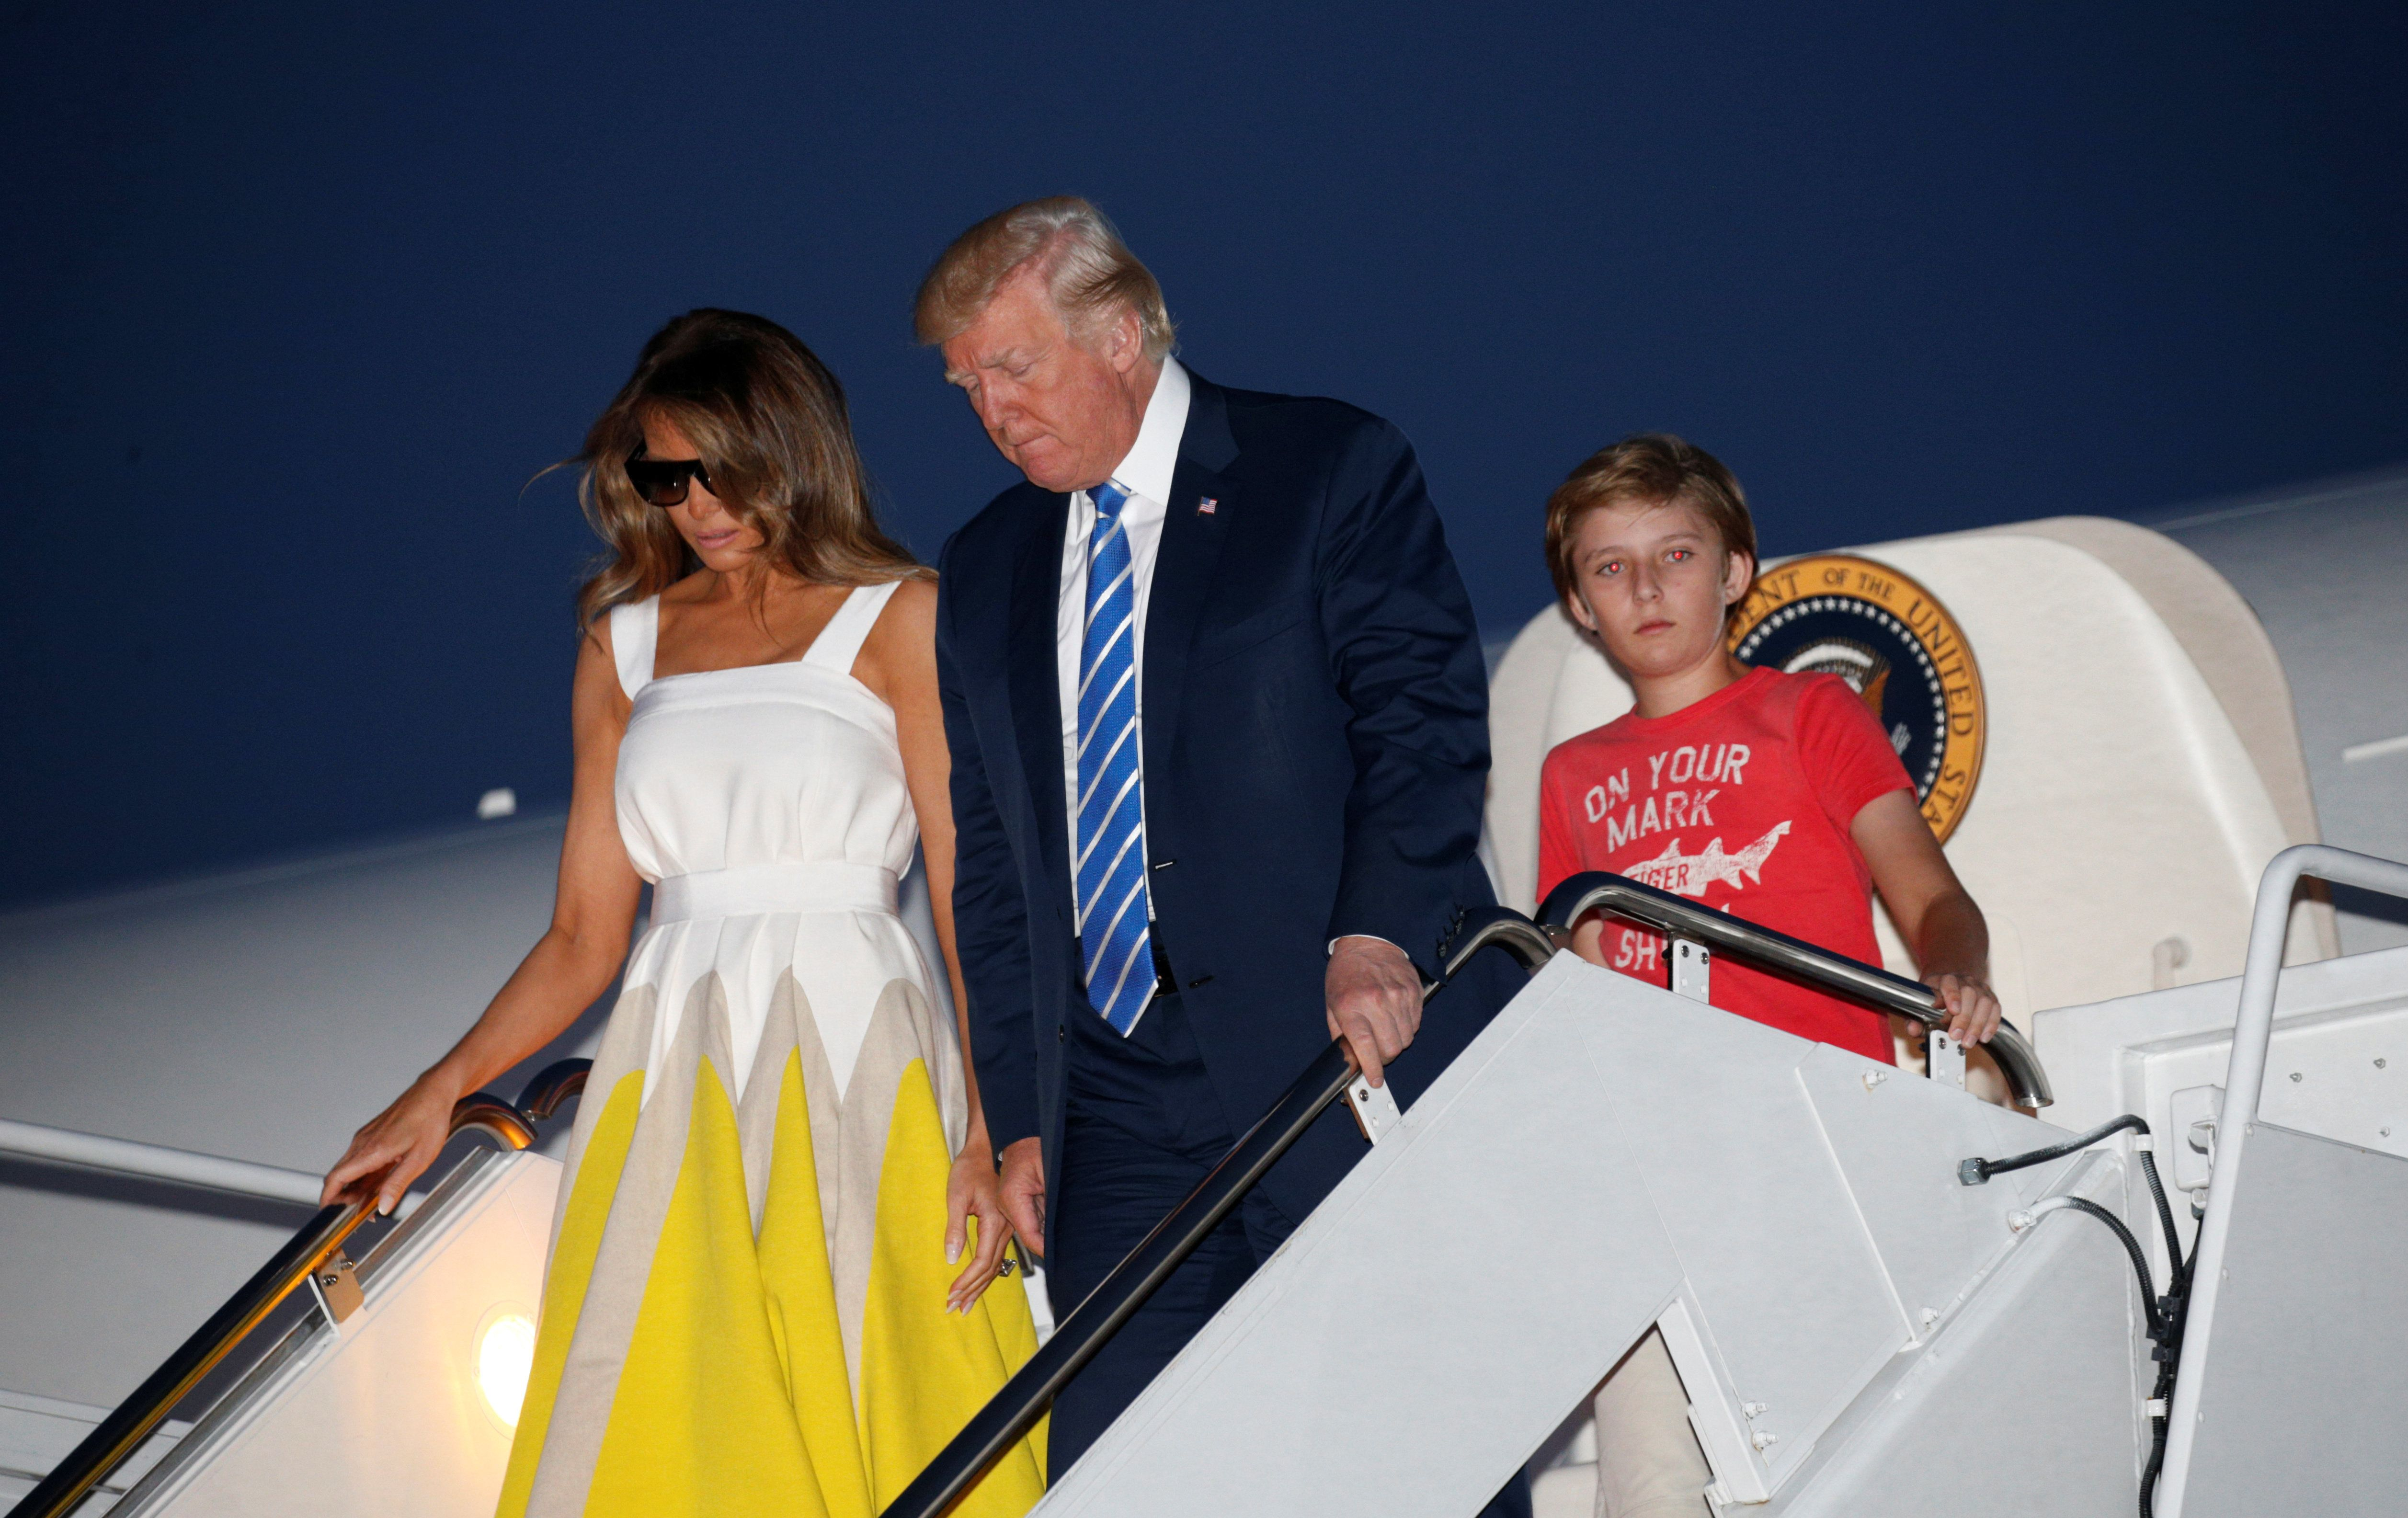 President Donald Trump arrives at Joint Base Andrews with his wife, Melania, and son Barron on Sunday.